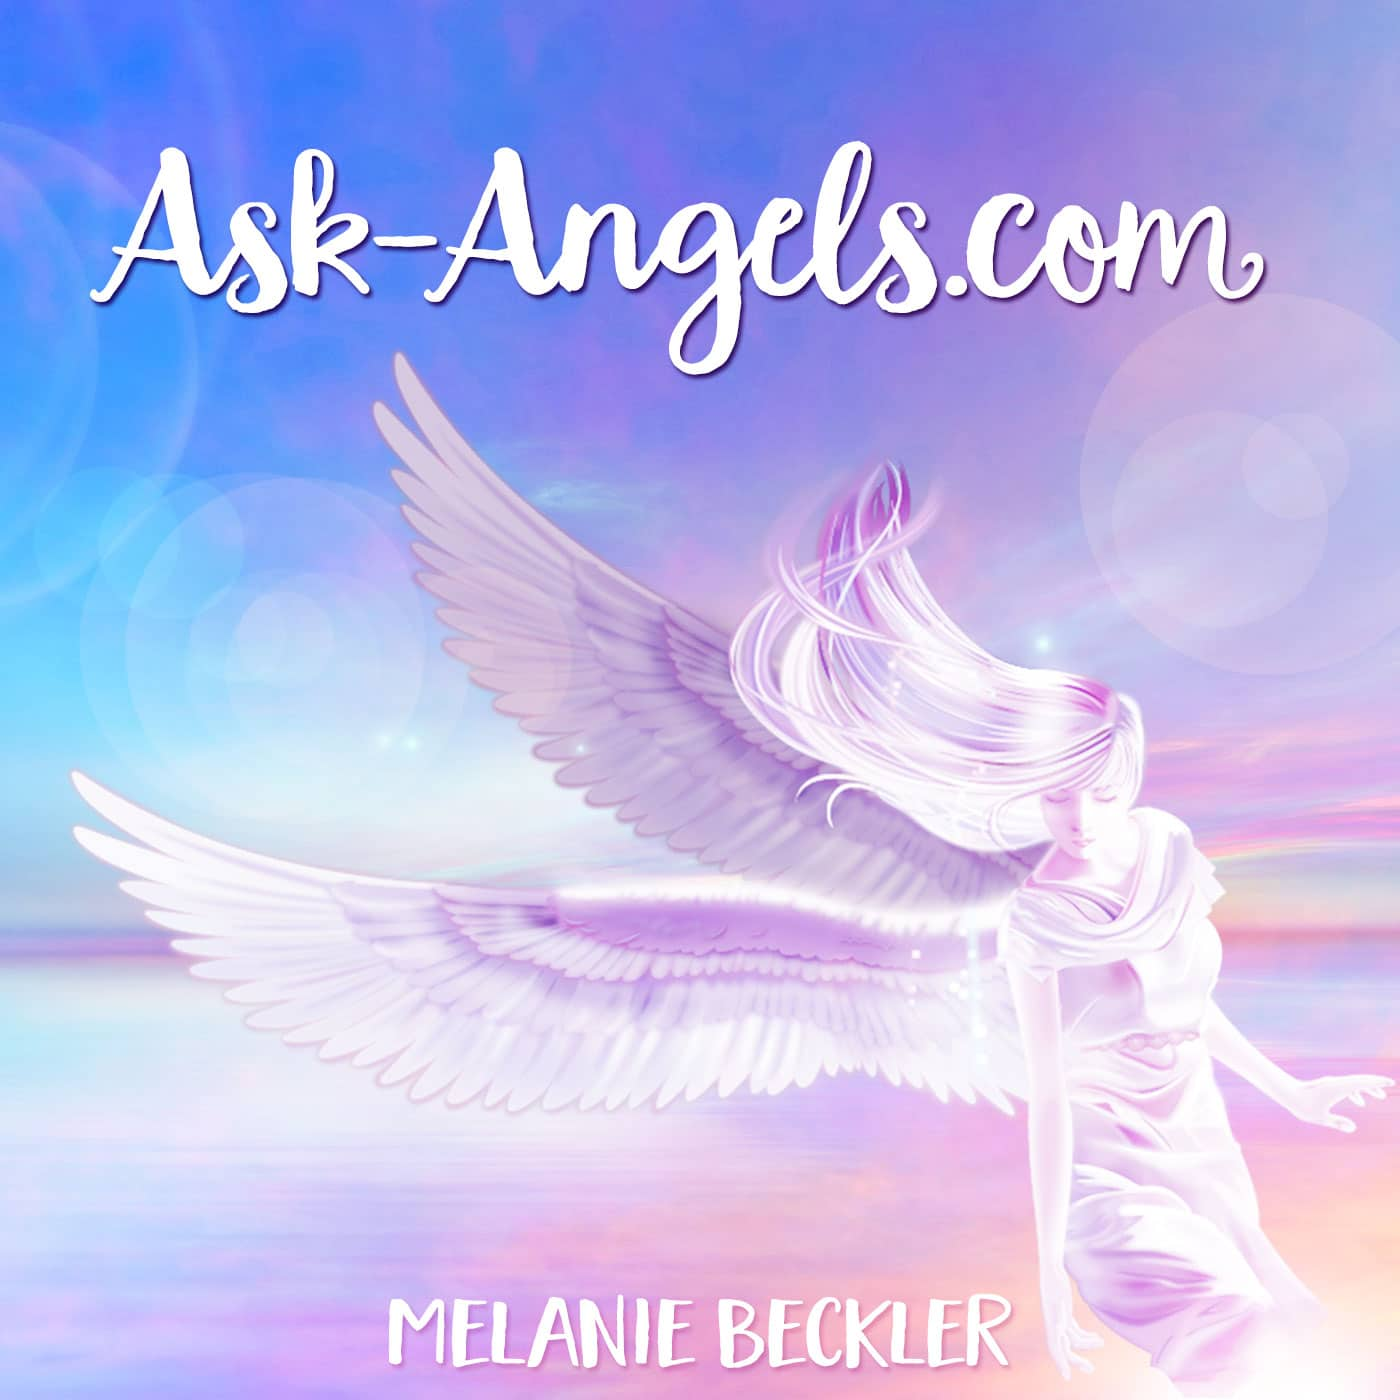 www.Ask-Angels.com